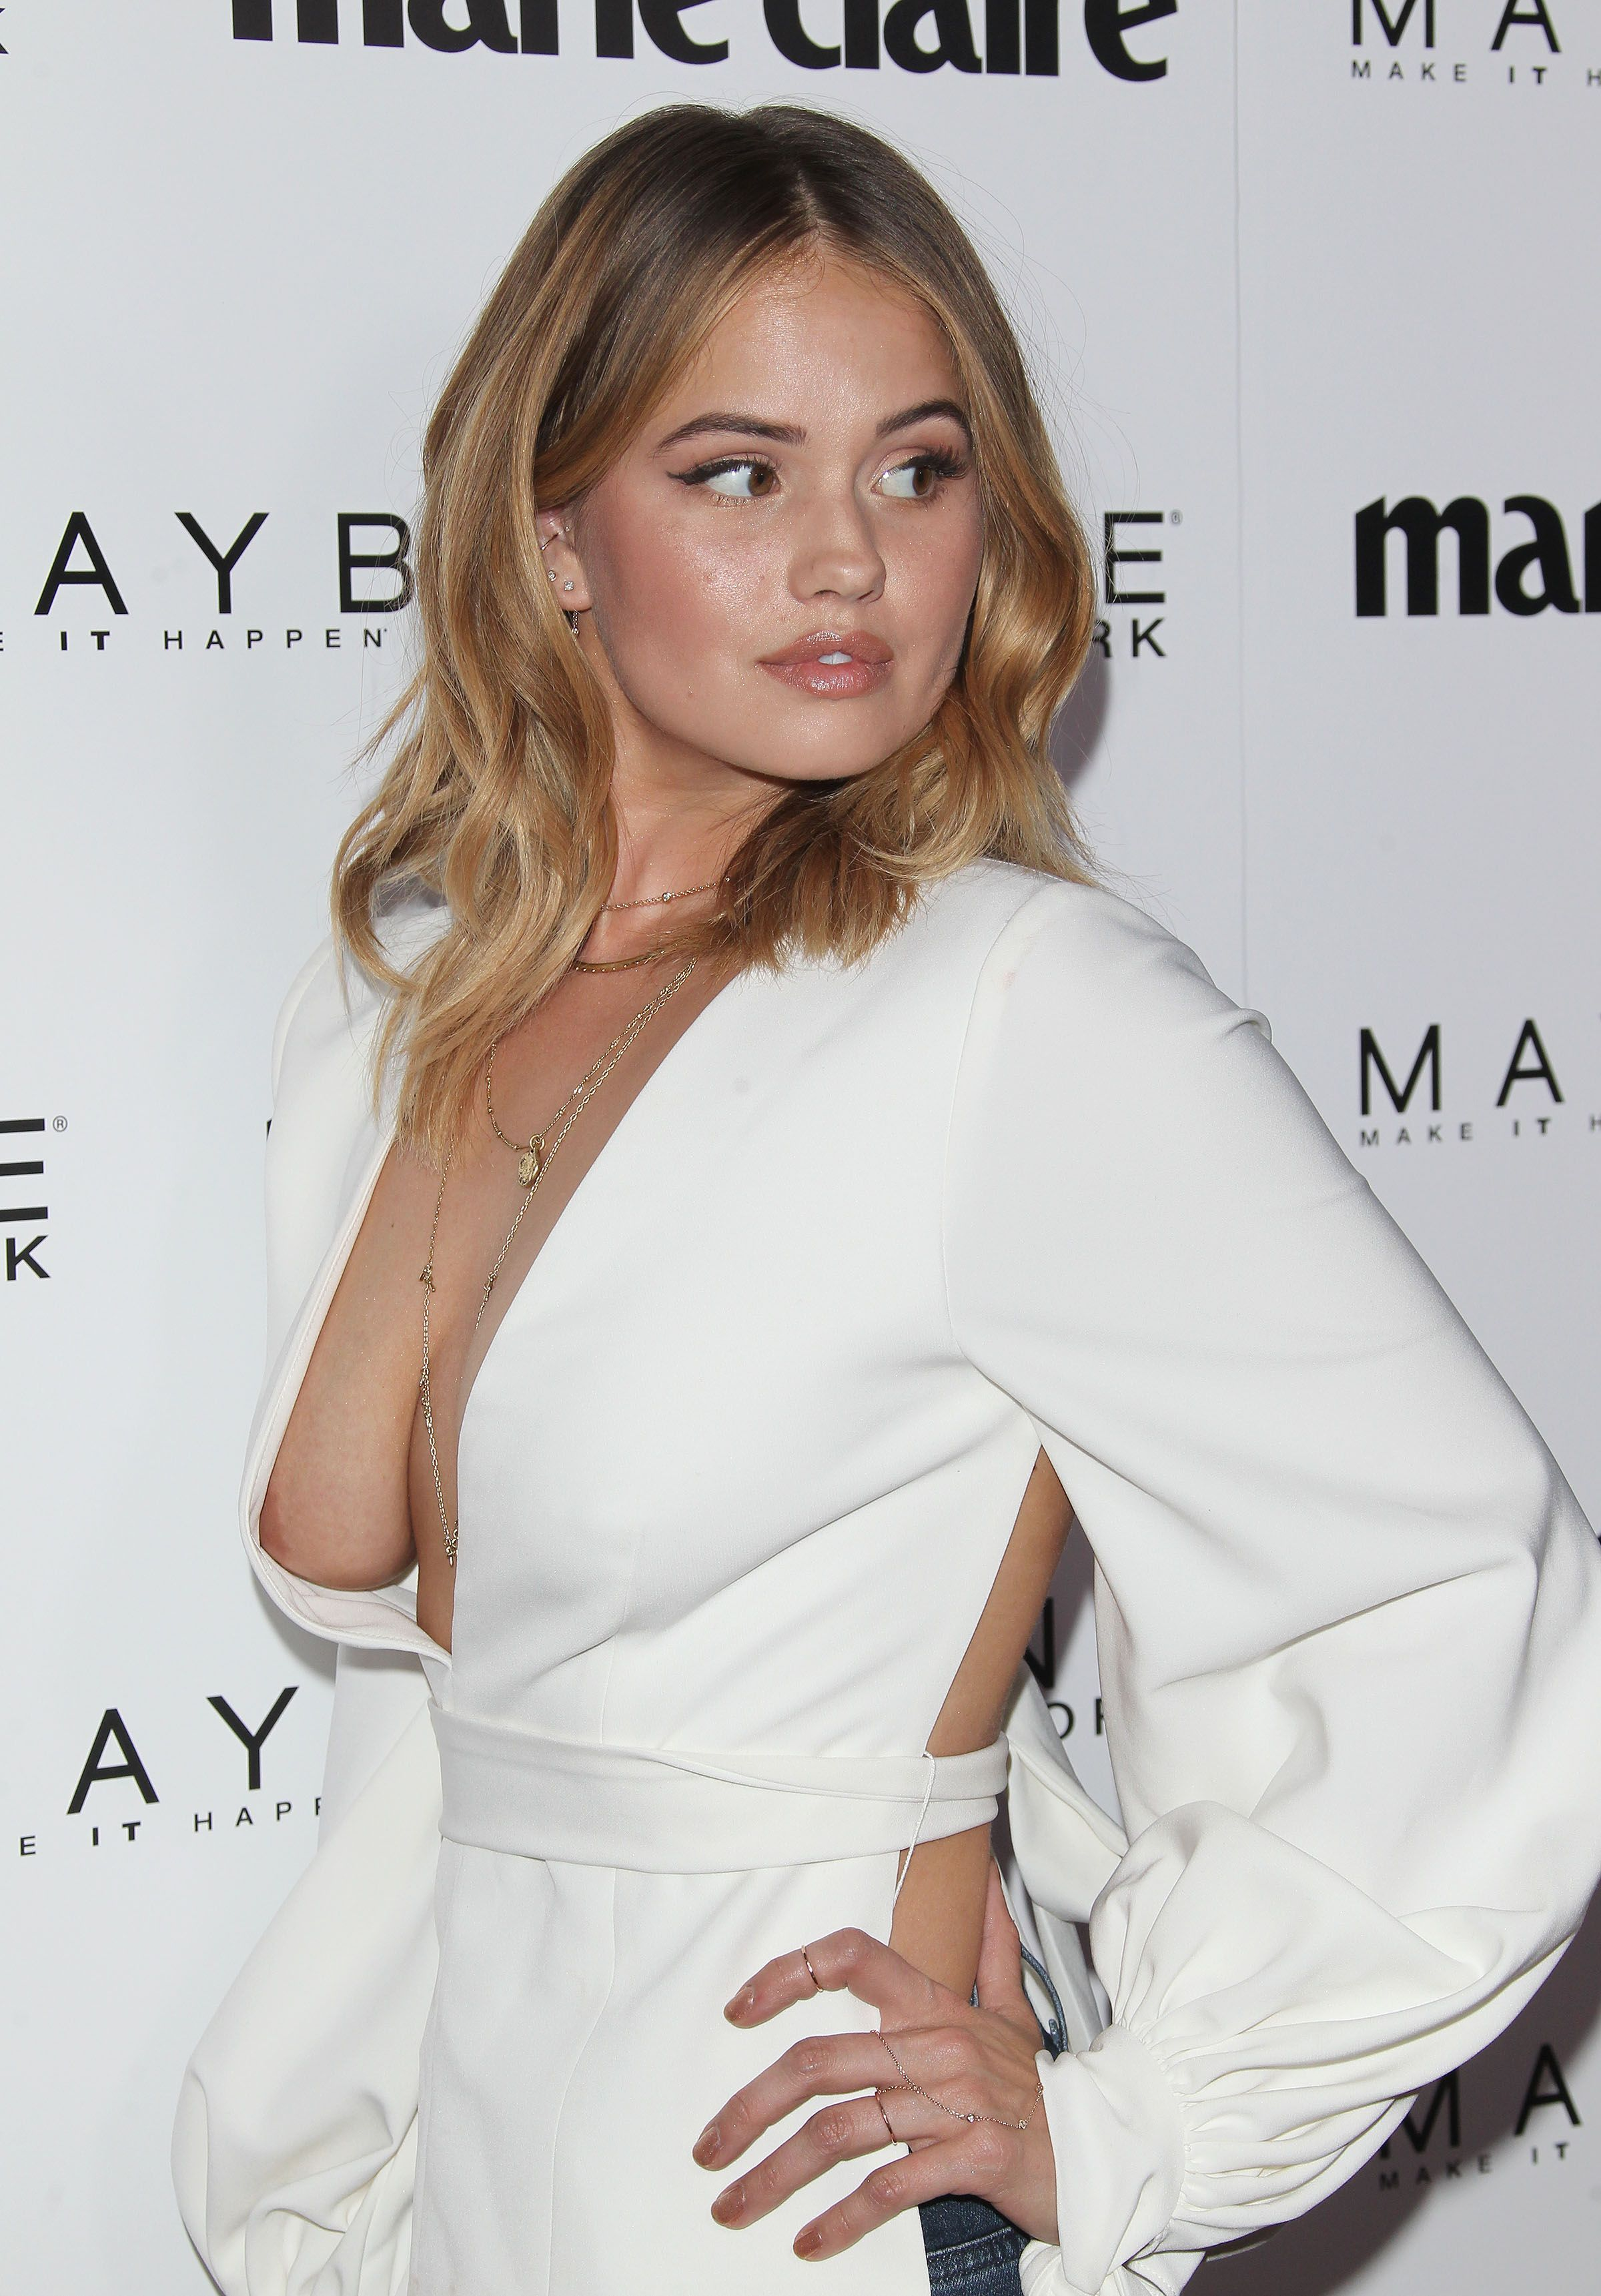 TheFappening Debby Ryan naked (98 photo), Pussy, Hot, Boobs, lingerie 2020